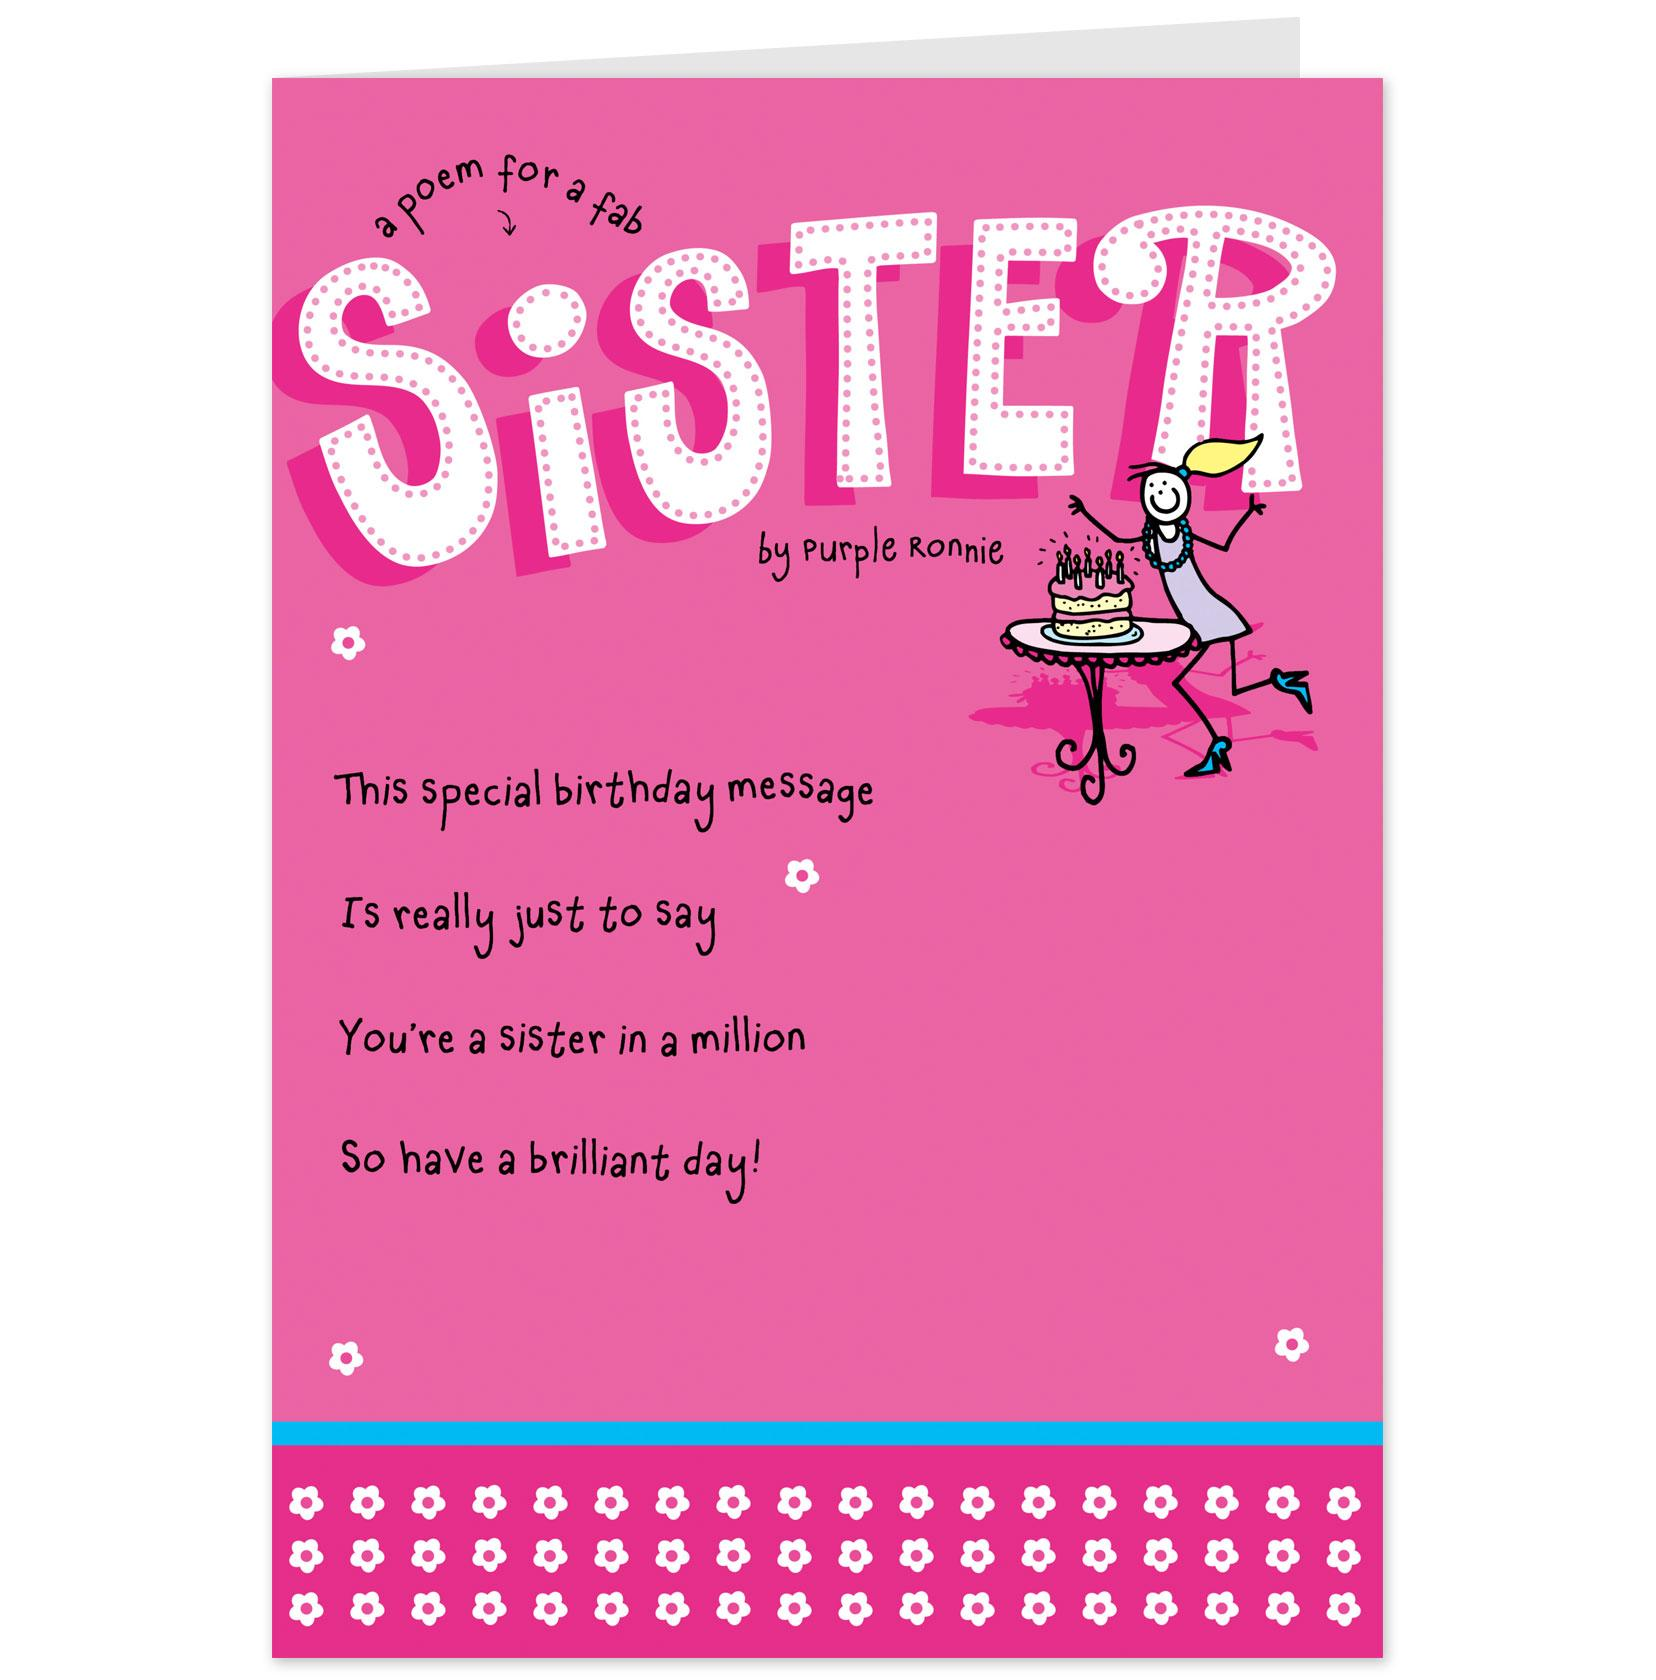 free birthday greeting card messages ; 8c03c7db469860d47dab07cf96f615f1